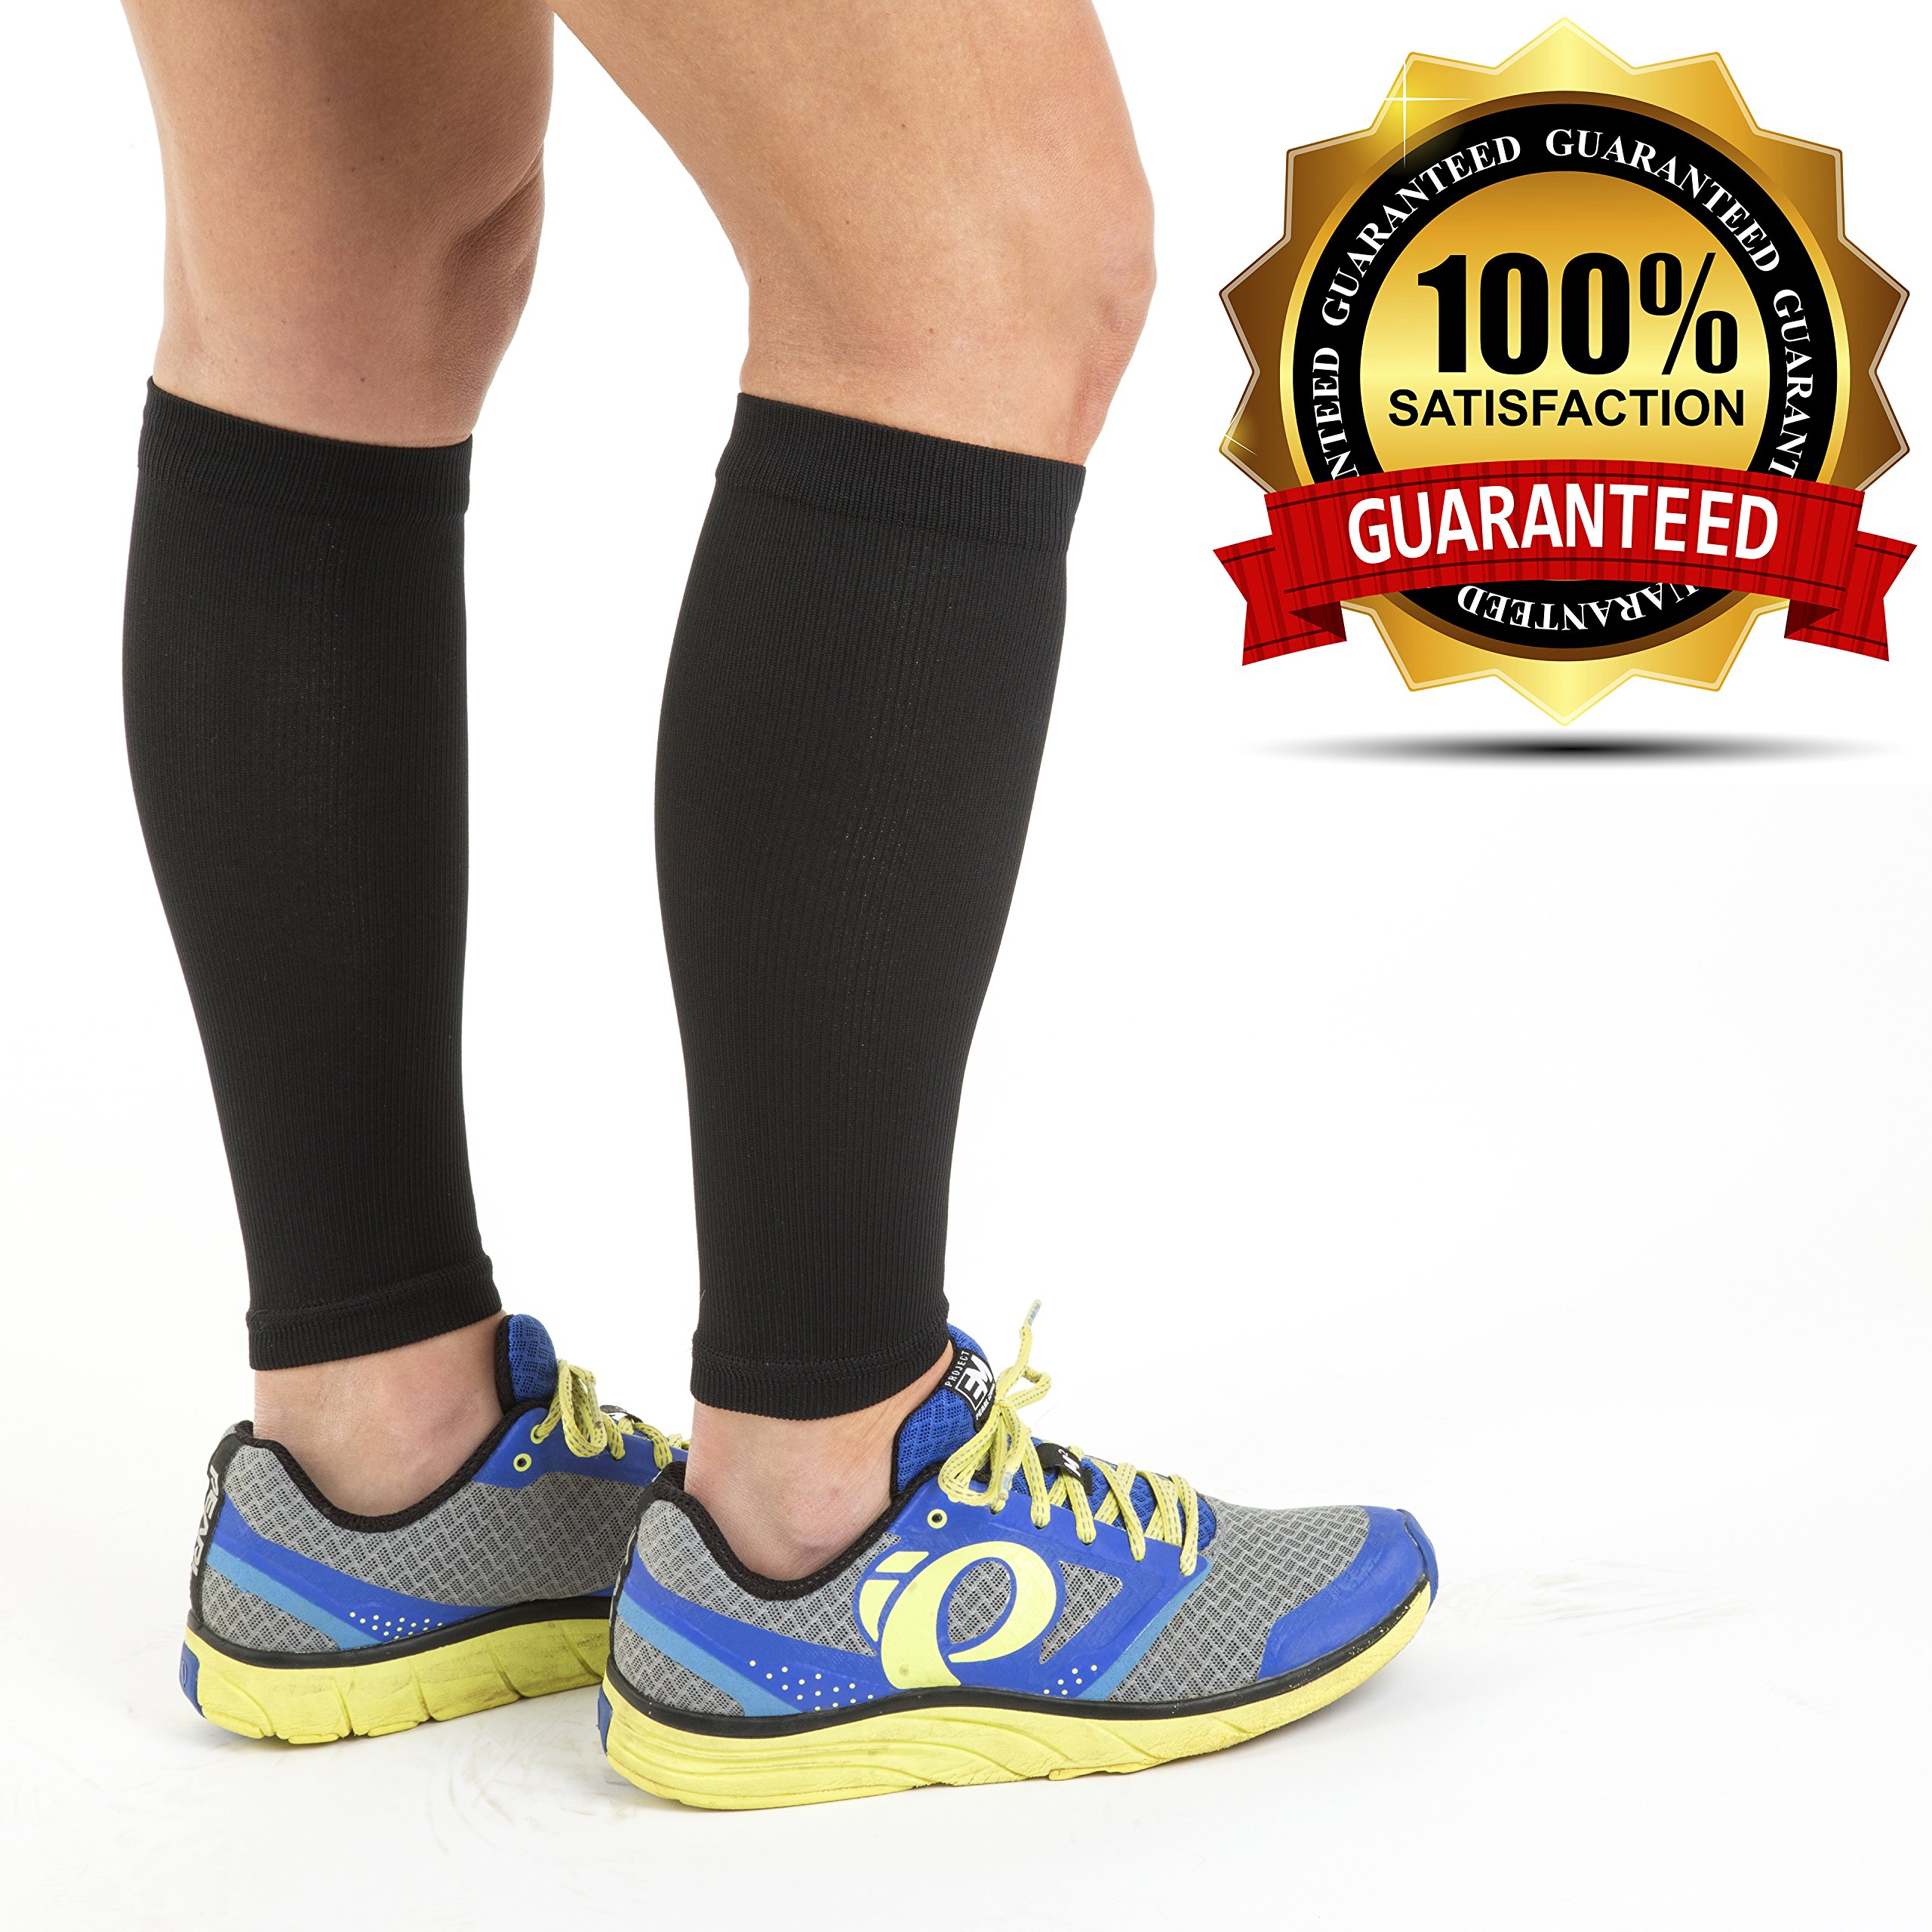 Active Life Calf Sleeve (1 Pair) - Best True Graduated Compression Leg Sleeves for Running, Basketball - Boost Circulation - Faster Recovery for Runners - Aid Shin Splints & Strains.